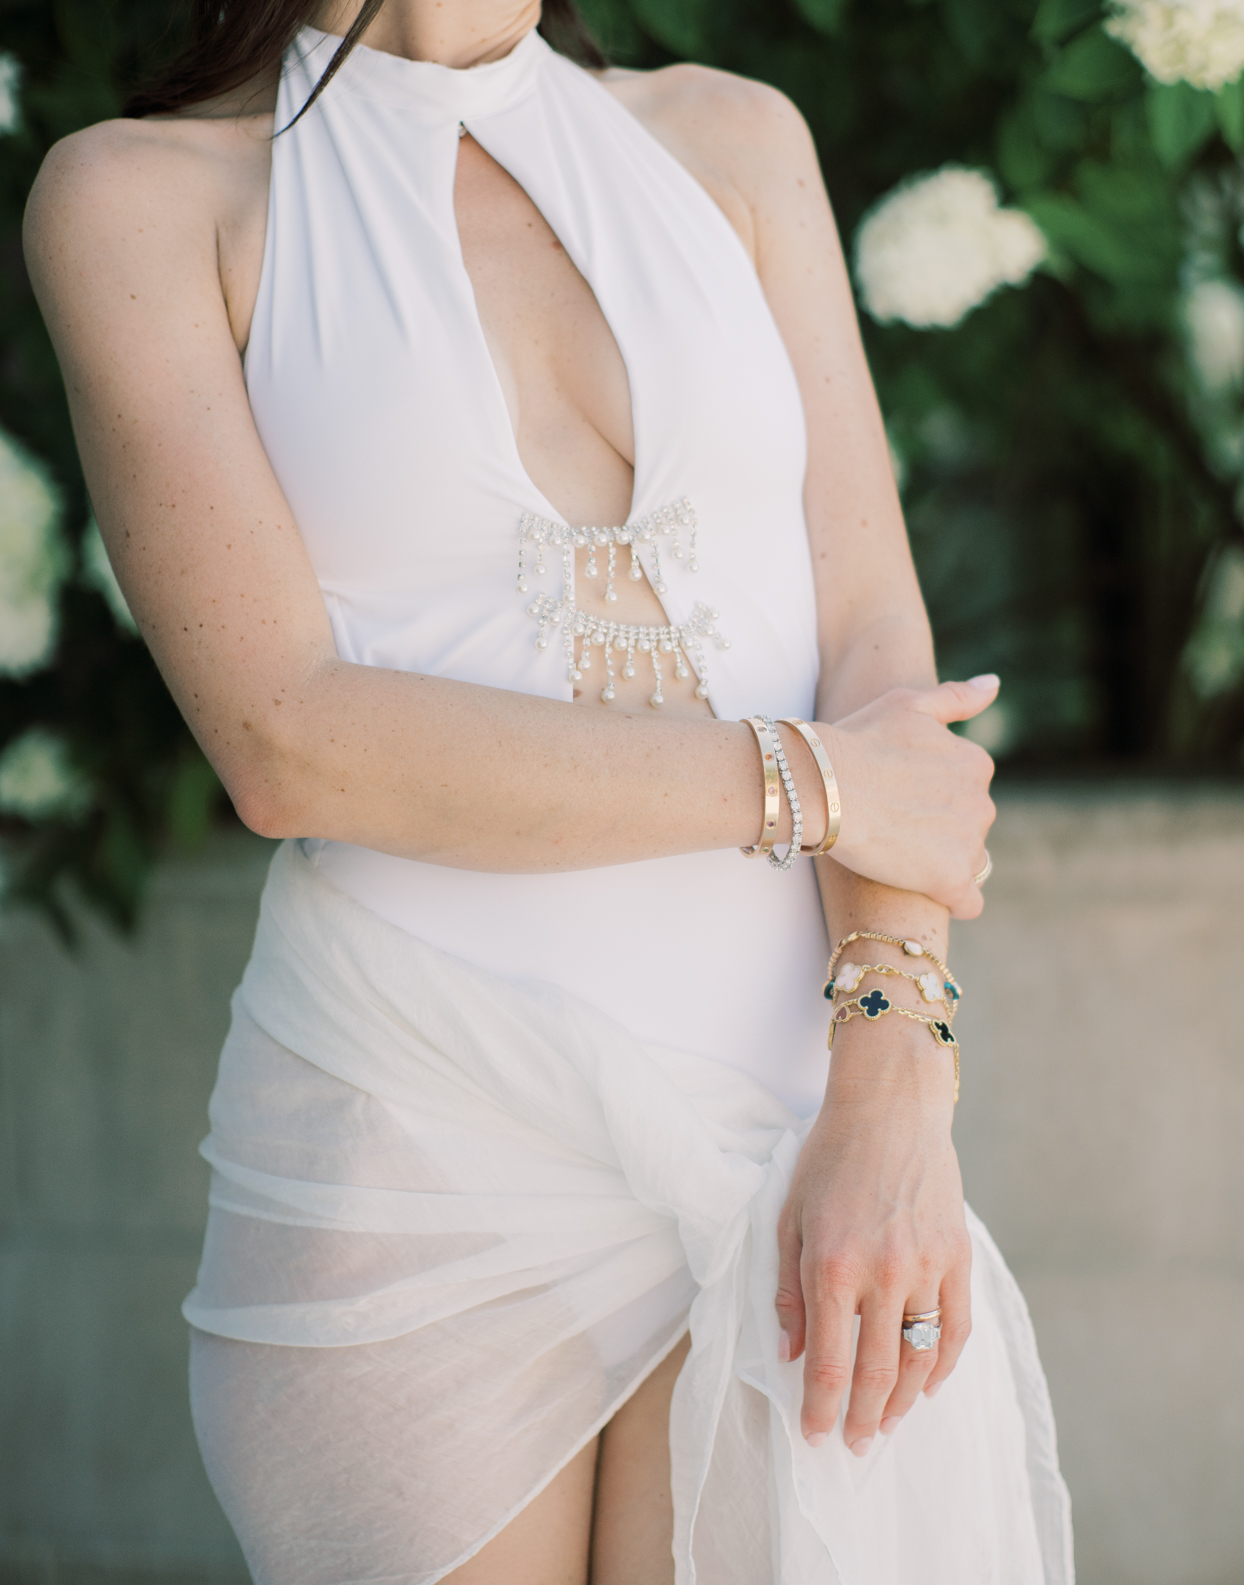 bride wearing jeweled white swimsuit with gold jewelry